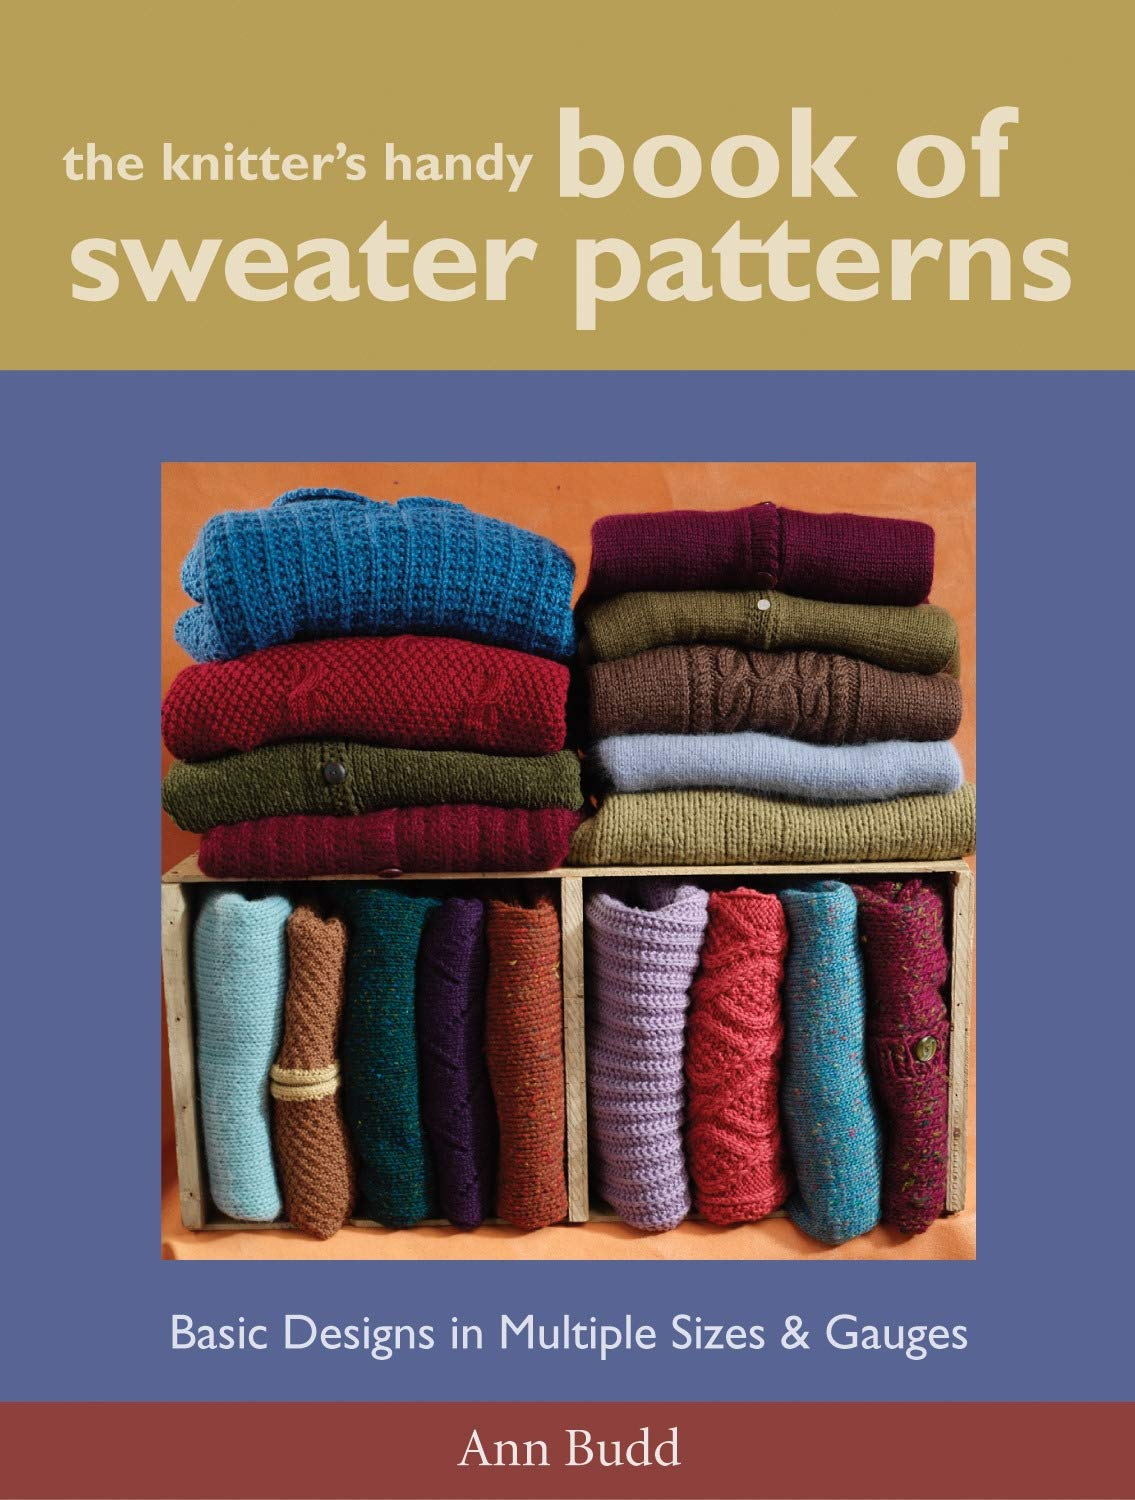 2004 The Knitter's handy book of Sweater Patterns